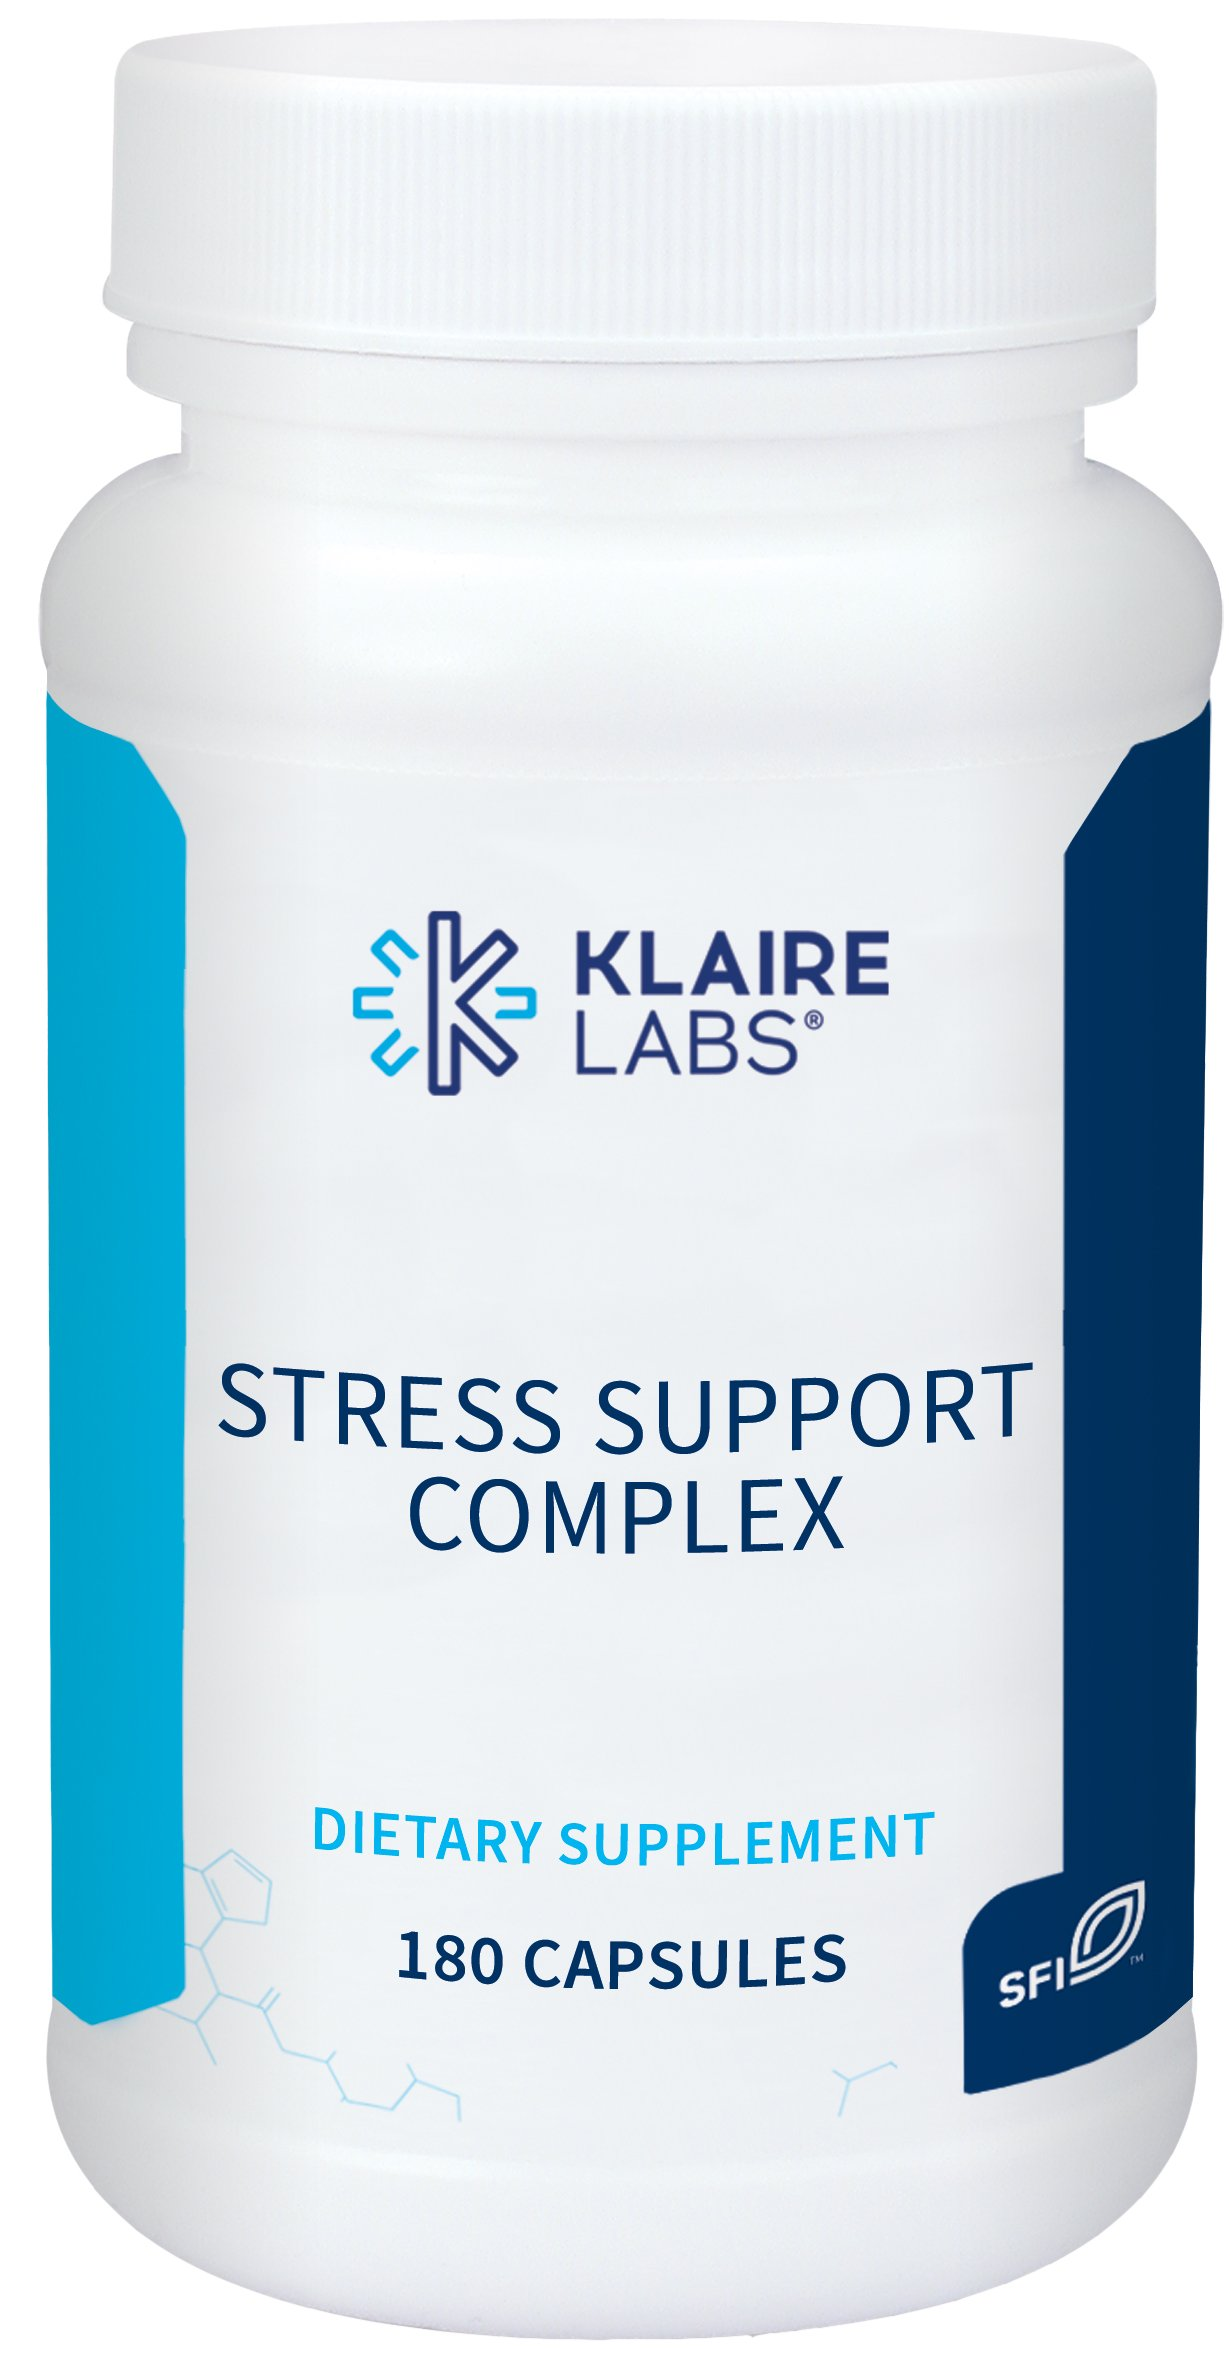 Klaire Labs (Complementary Prescriptions) Stress Support Complex with GABA, L-theanine & Valerian (180 Capsules)